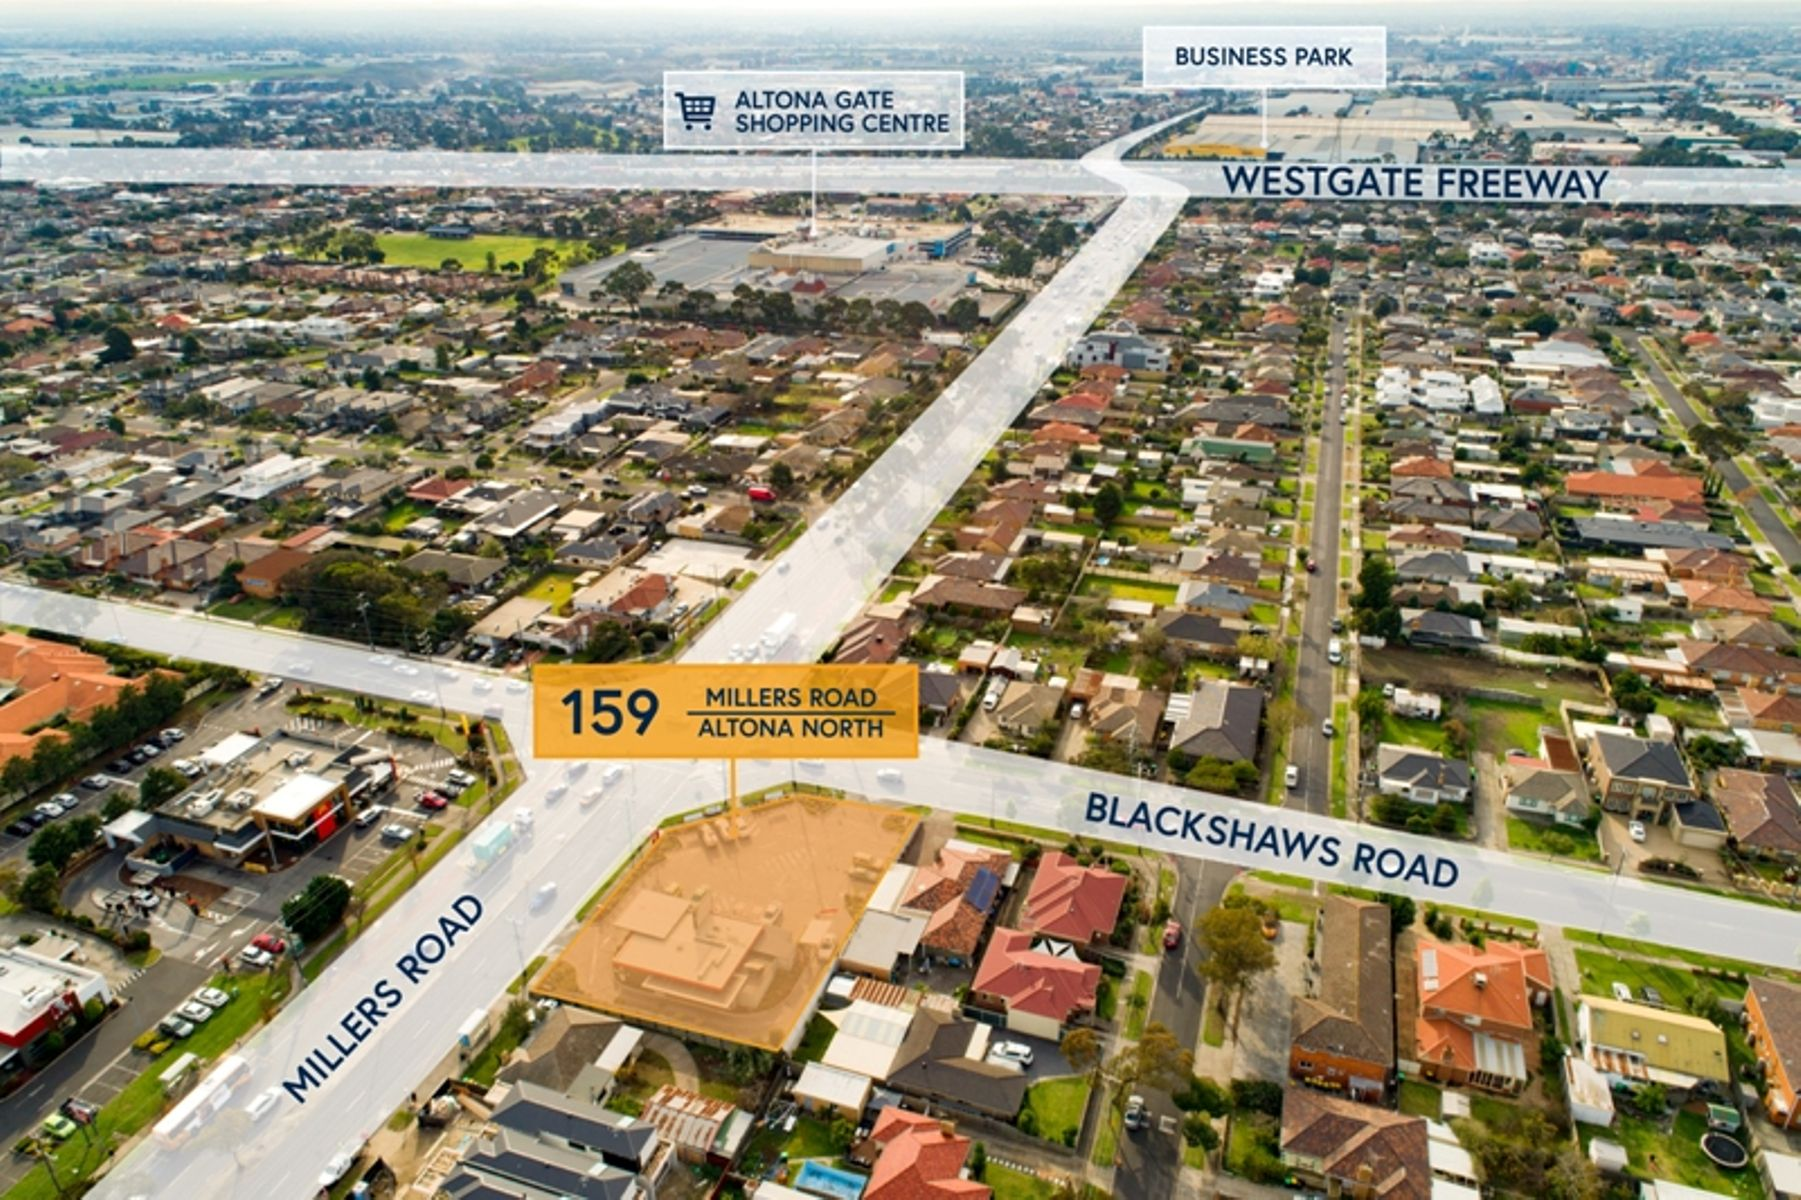 TES20339 581 Millers Rd Altona North   Overlay5 PROOF 2